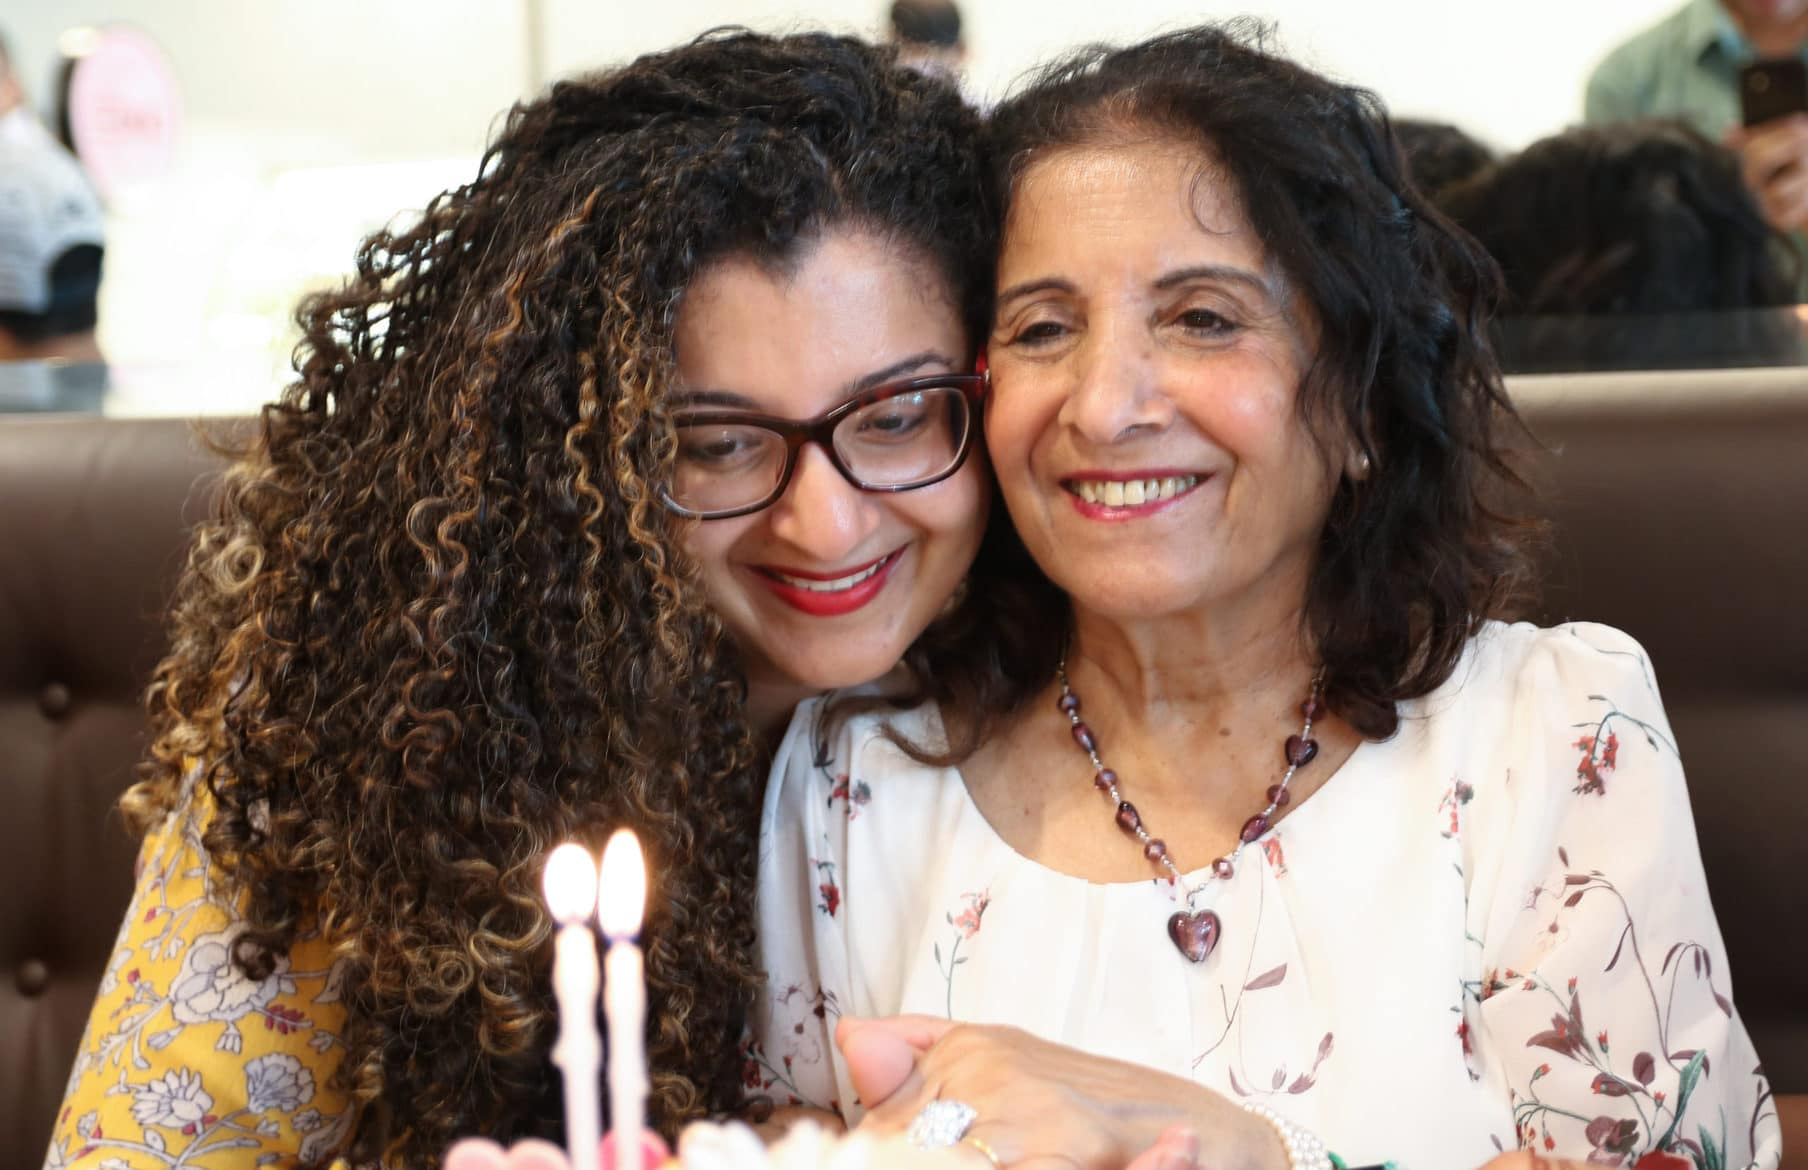 On Mother's Day, a mother and daughter snuggling in front of a cake with 2 candles